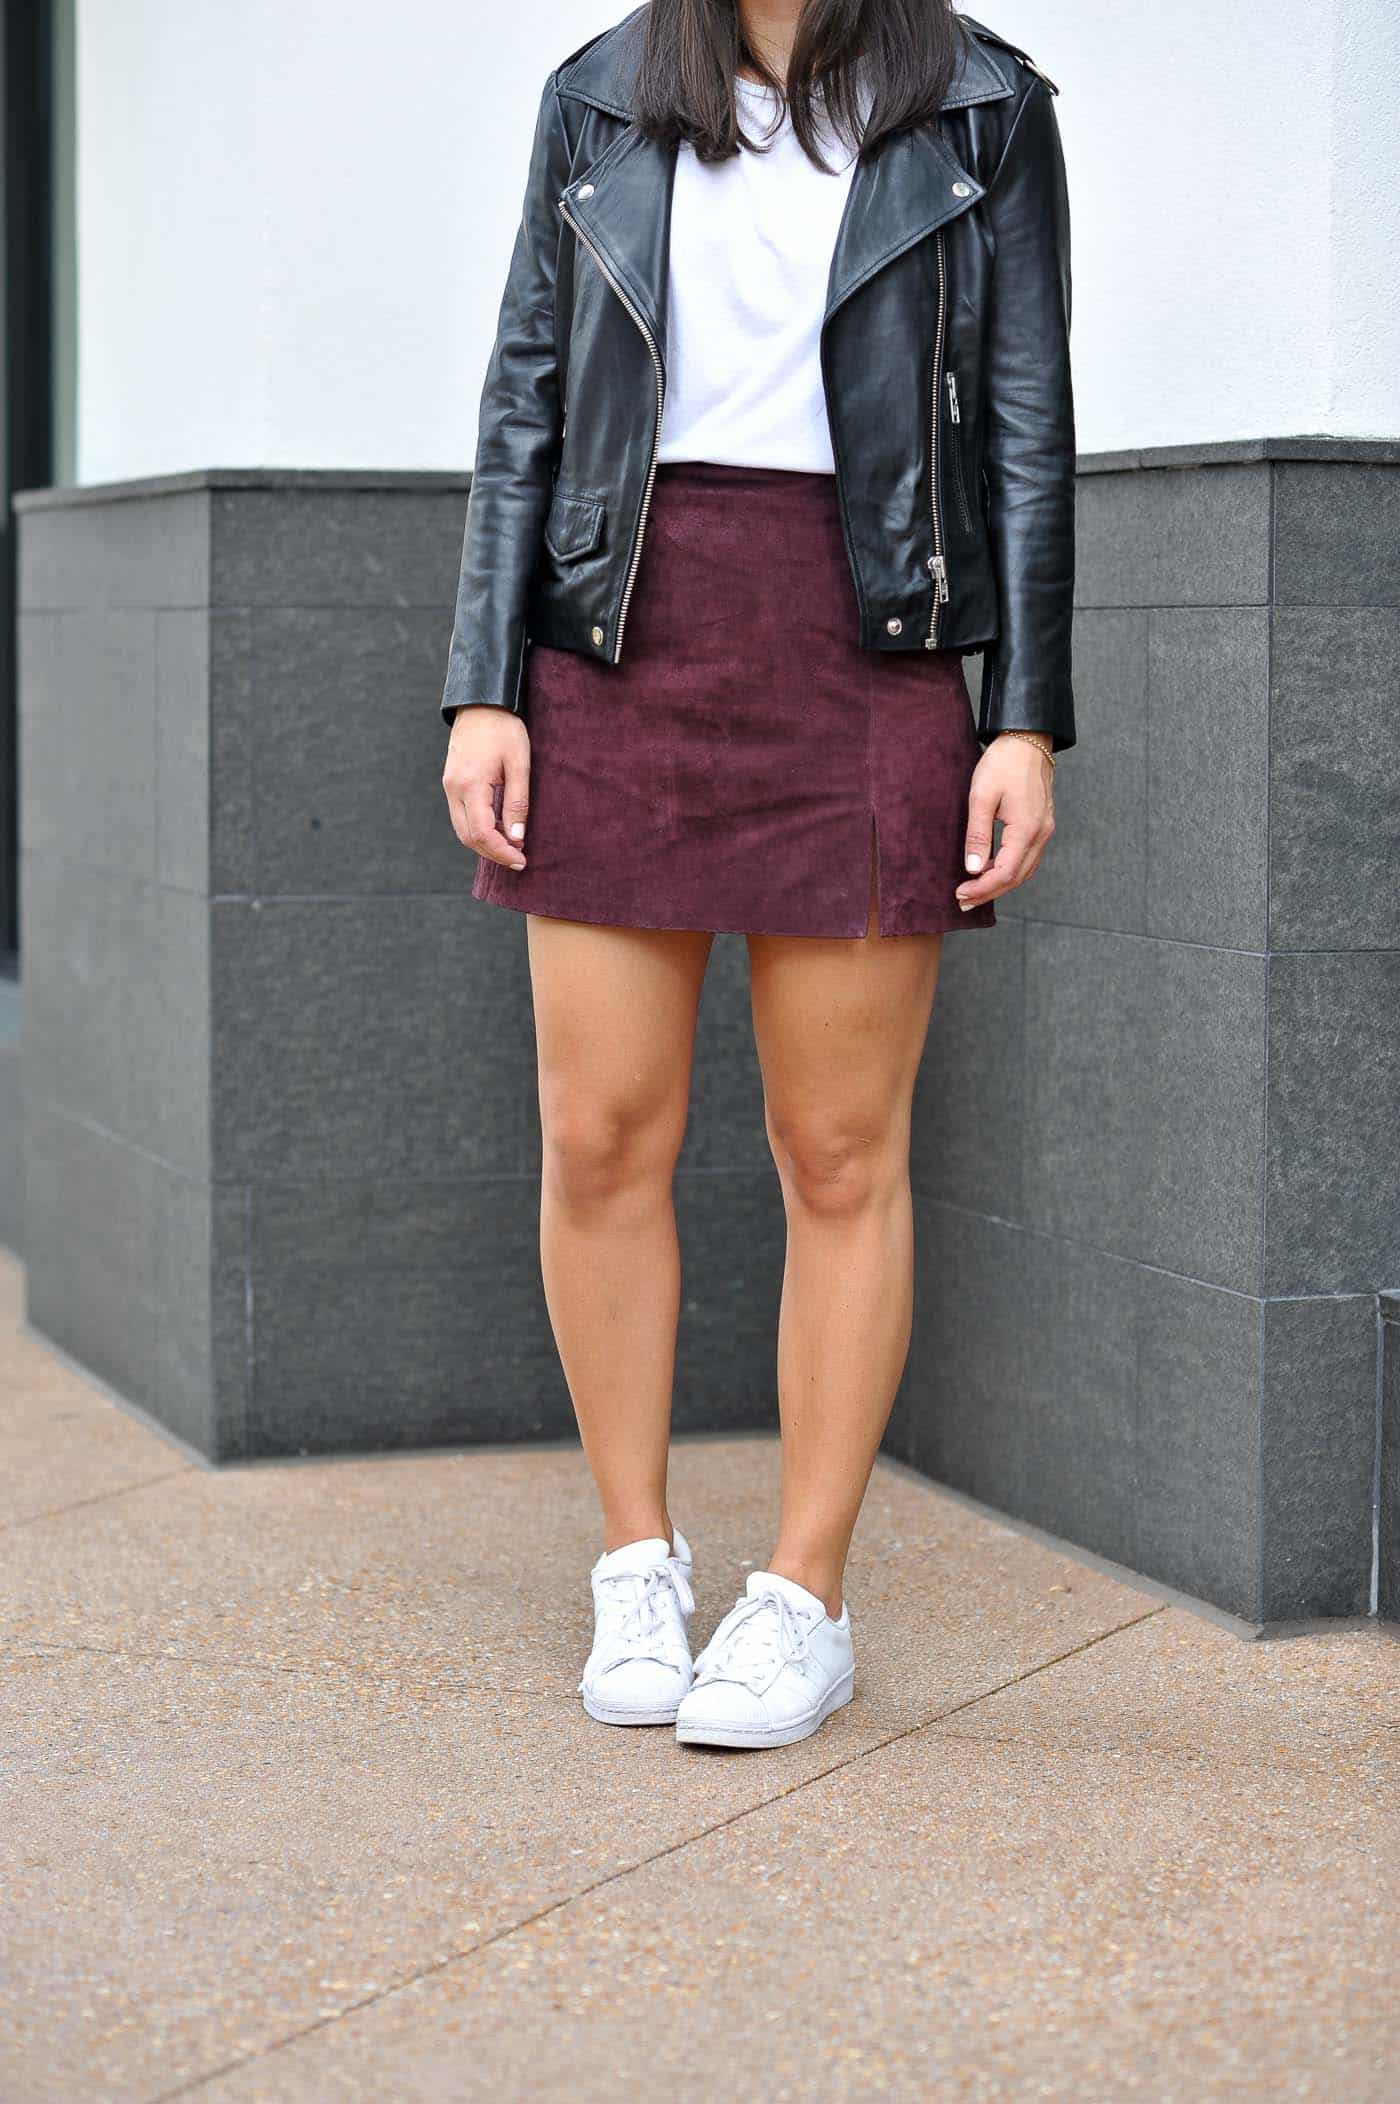 Styling Adidas For Fall With A Mini Skirt, Adidas outfit ideas - My Style Vita @mystylevita